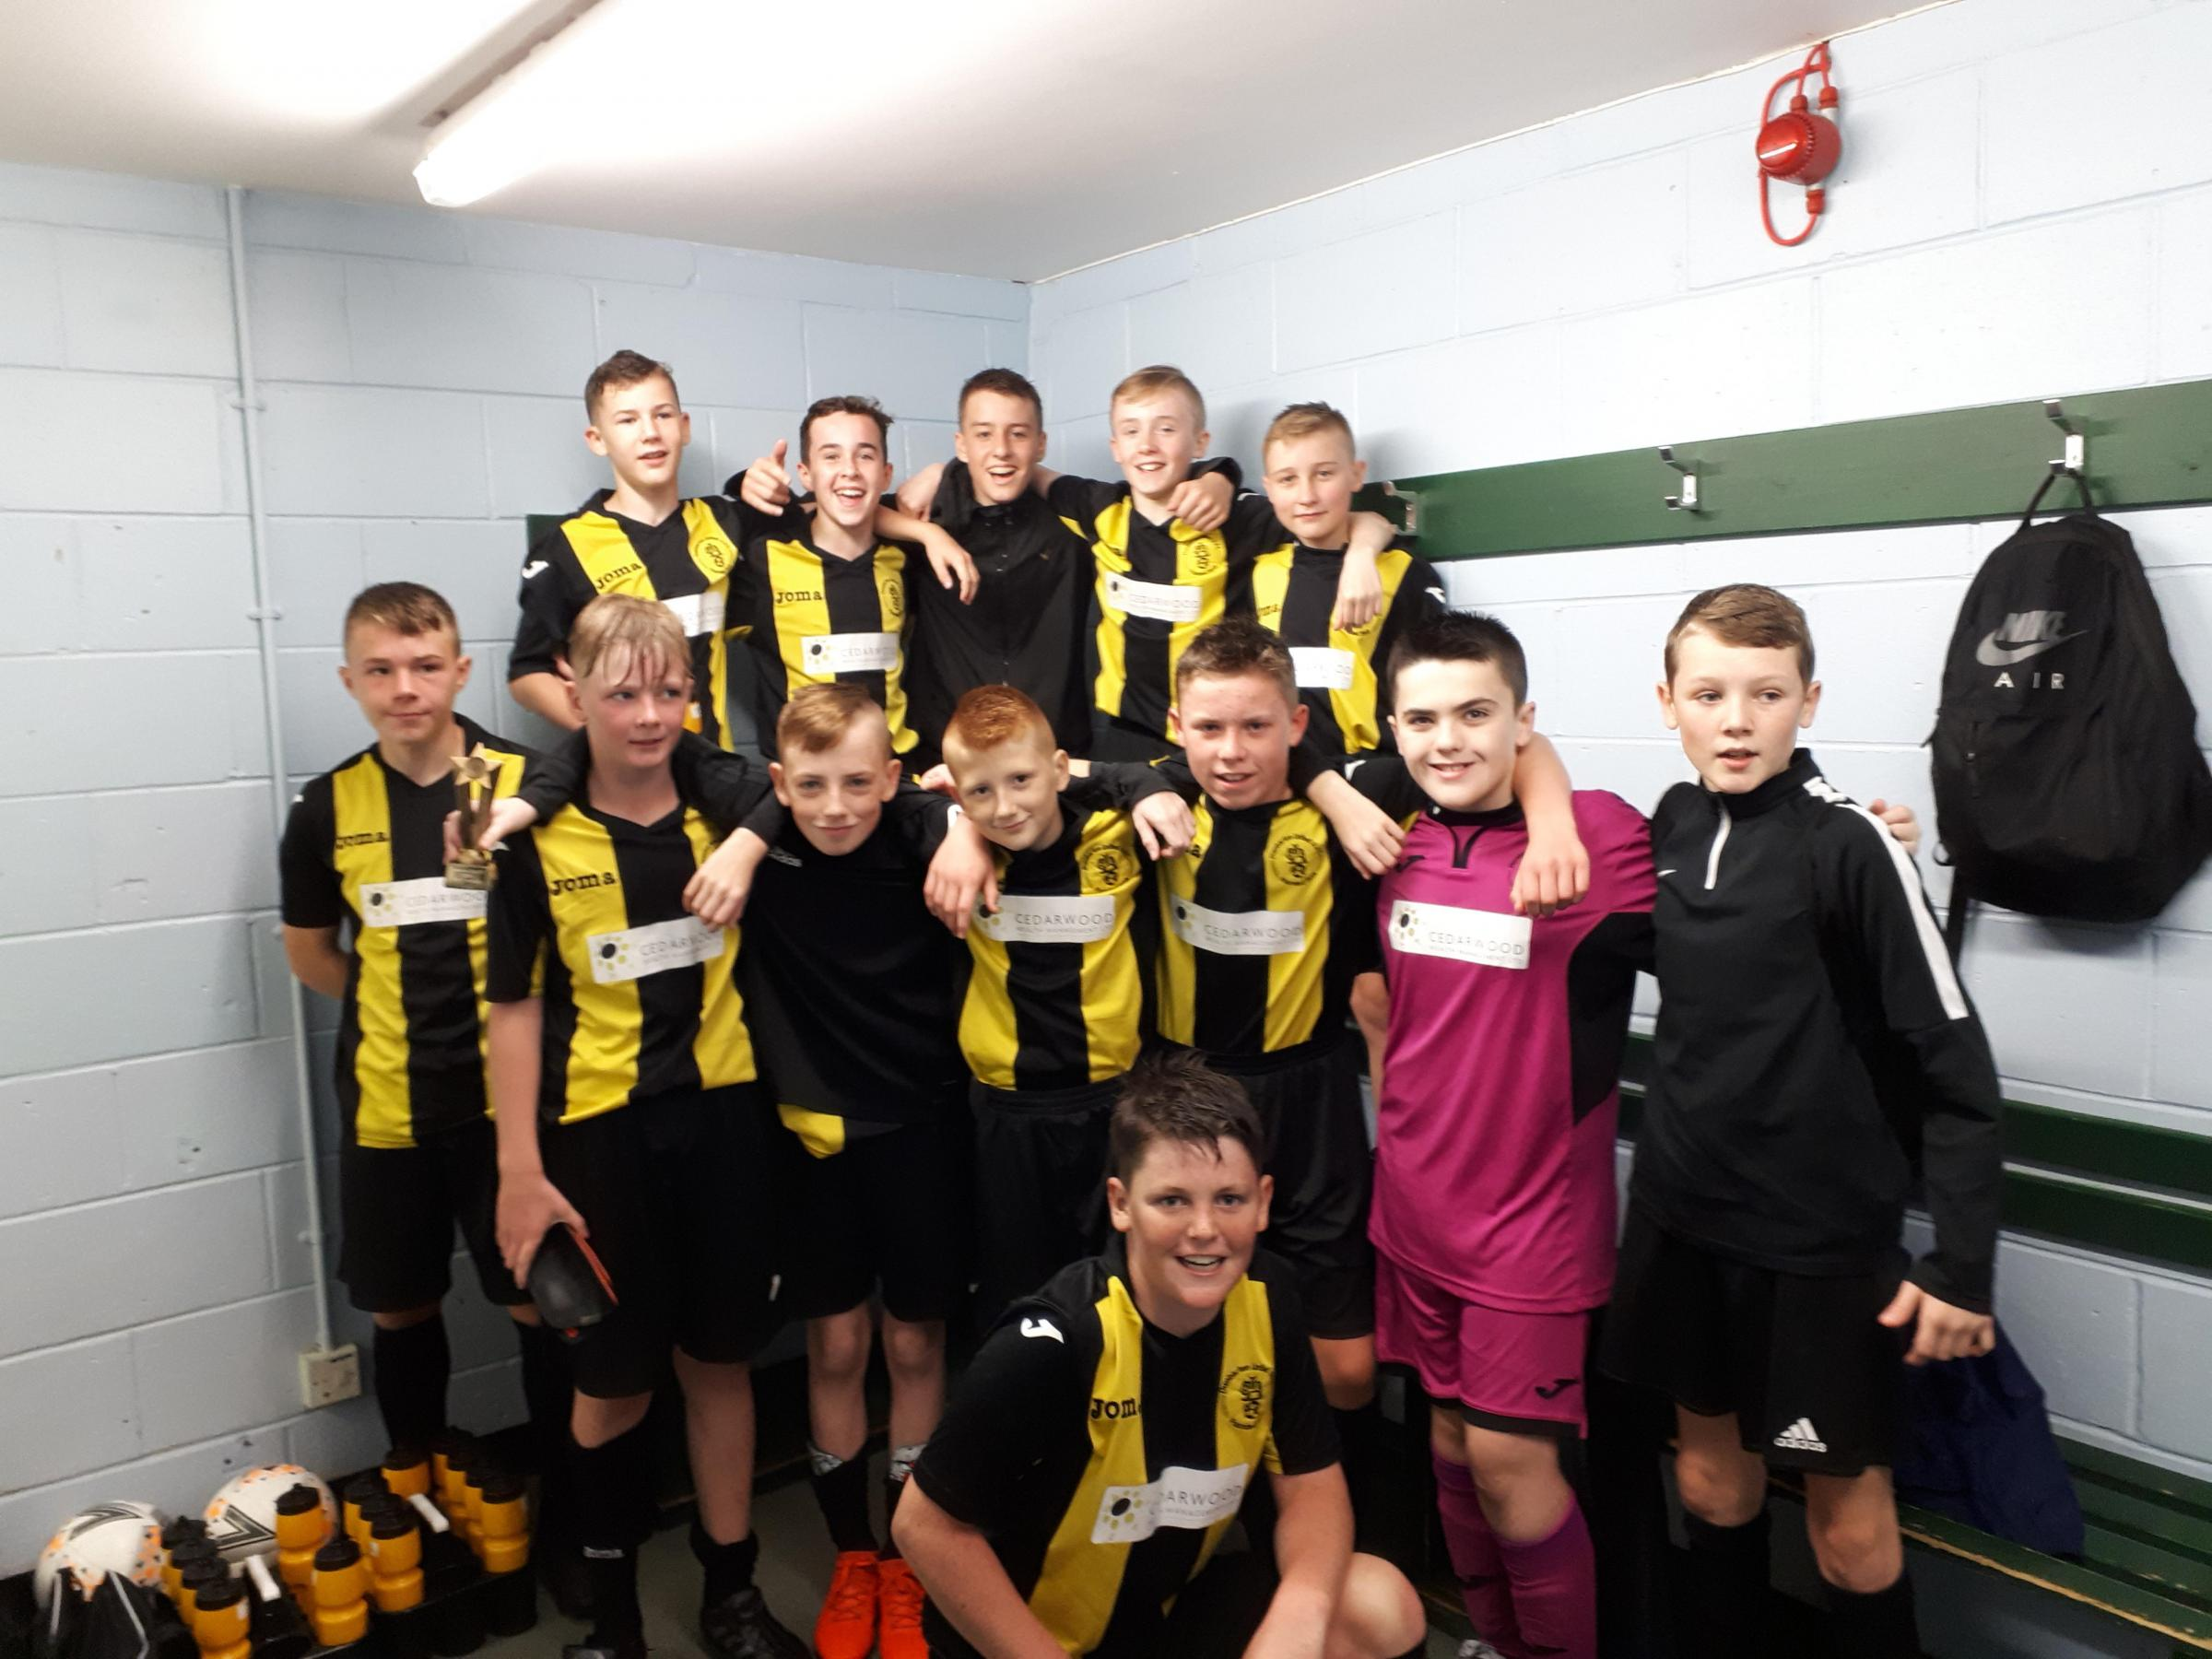 Dumbarton United 2005s